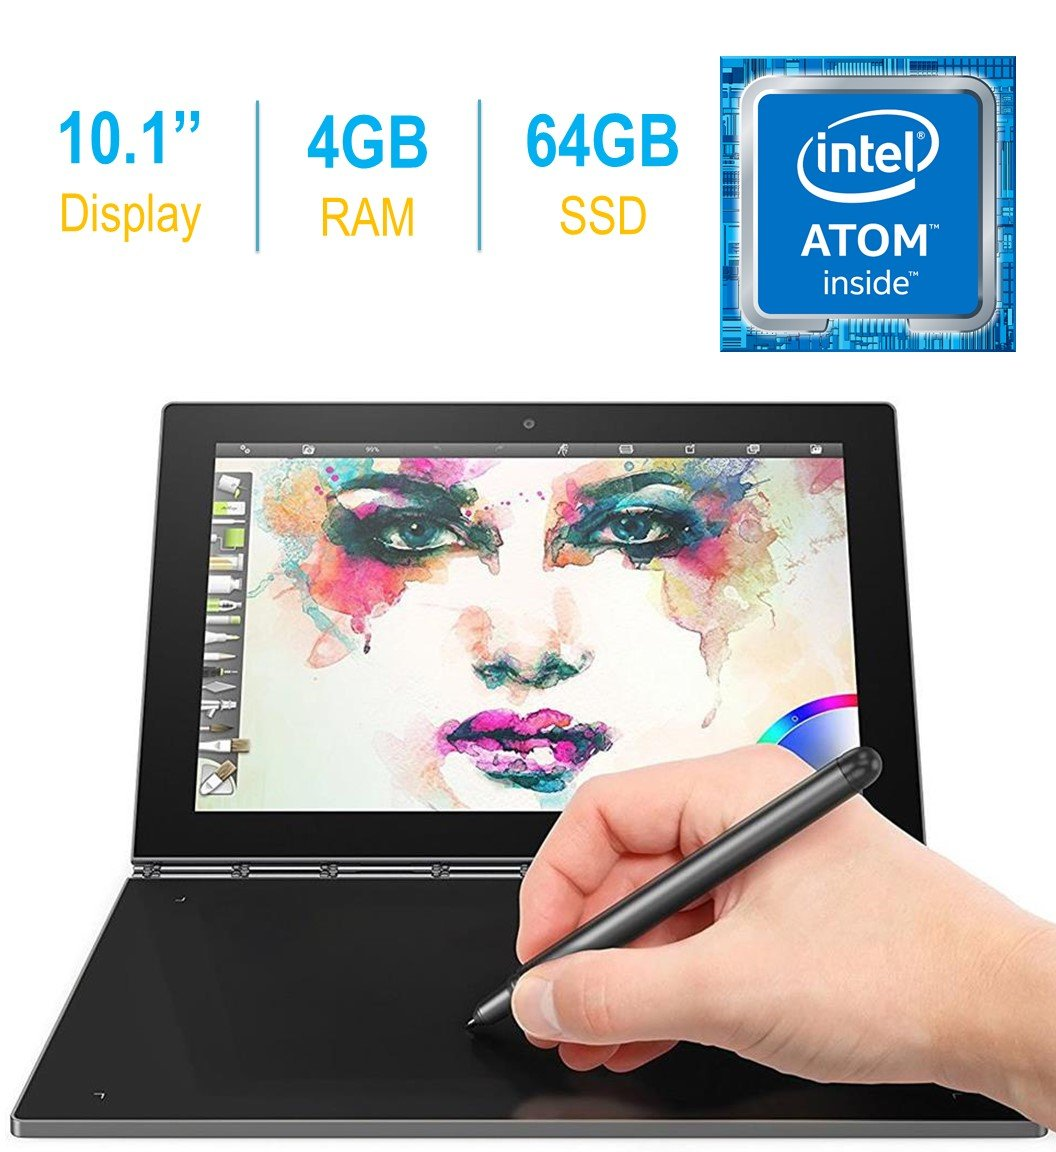 2017 Newest Lenovo Yoga Book 10.1-inch FHD Touch IPS 2-in-1 Tablet PC, Intel Atom x5-Z8550 1.44GHz, 4GB DDR3 RAM, 64GB SSD, Bluetooth, HD Graphics 400